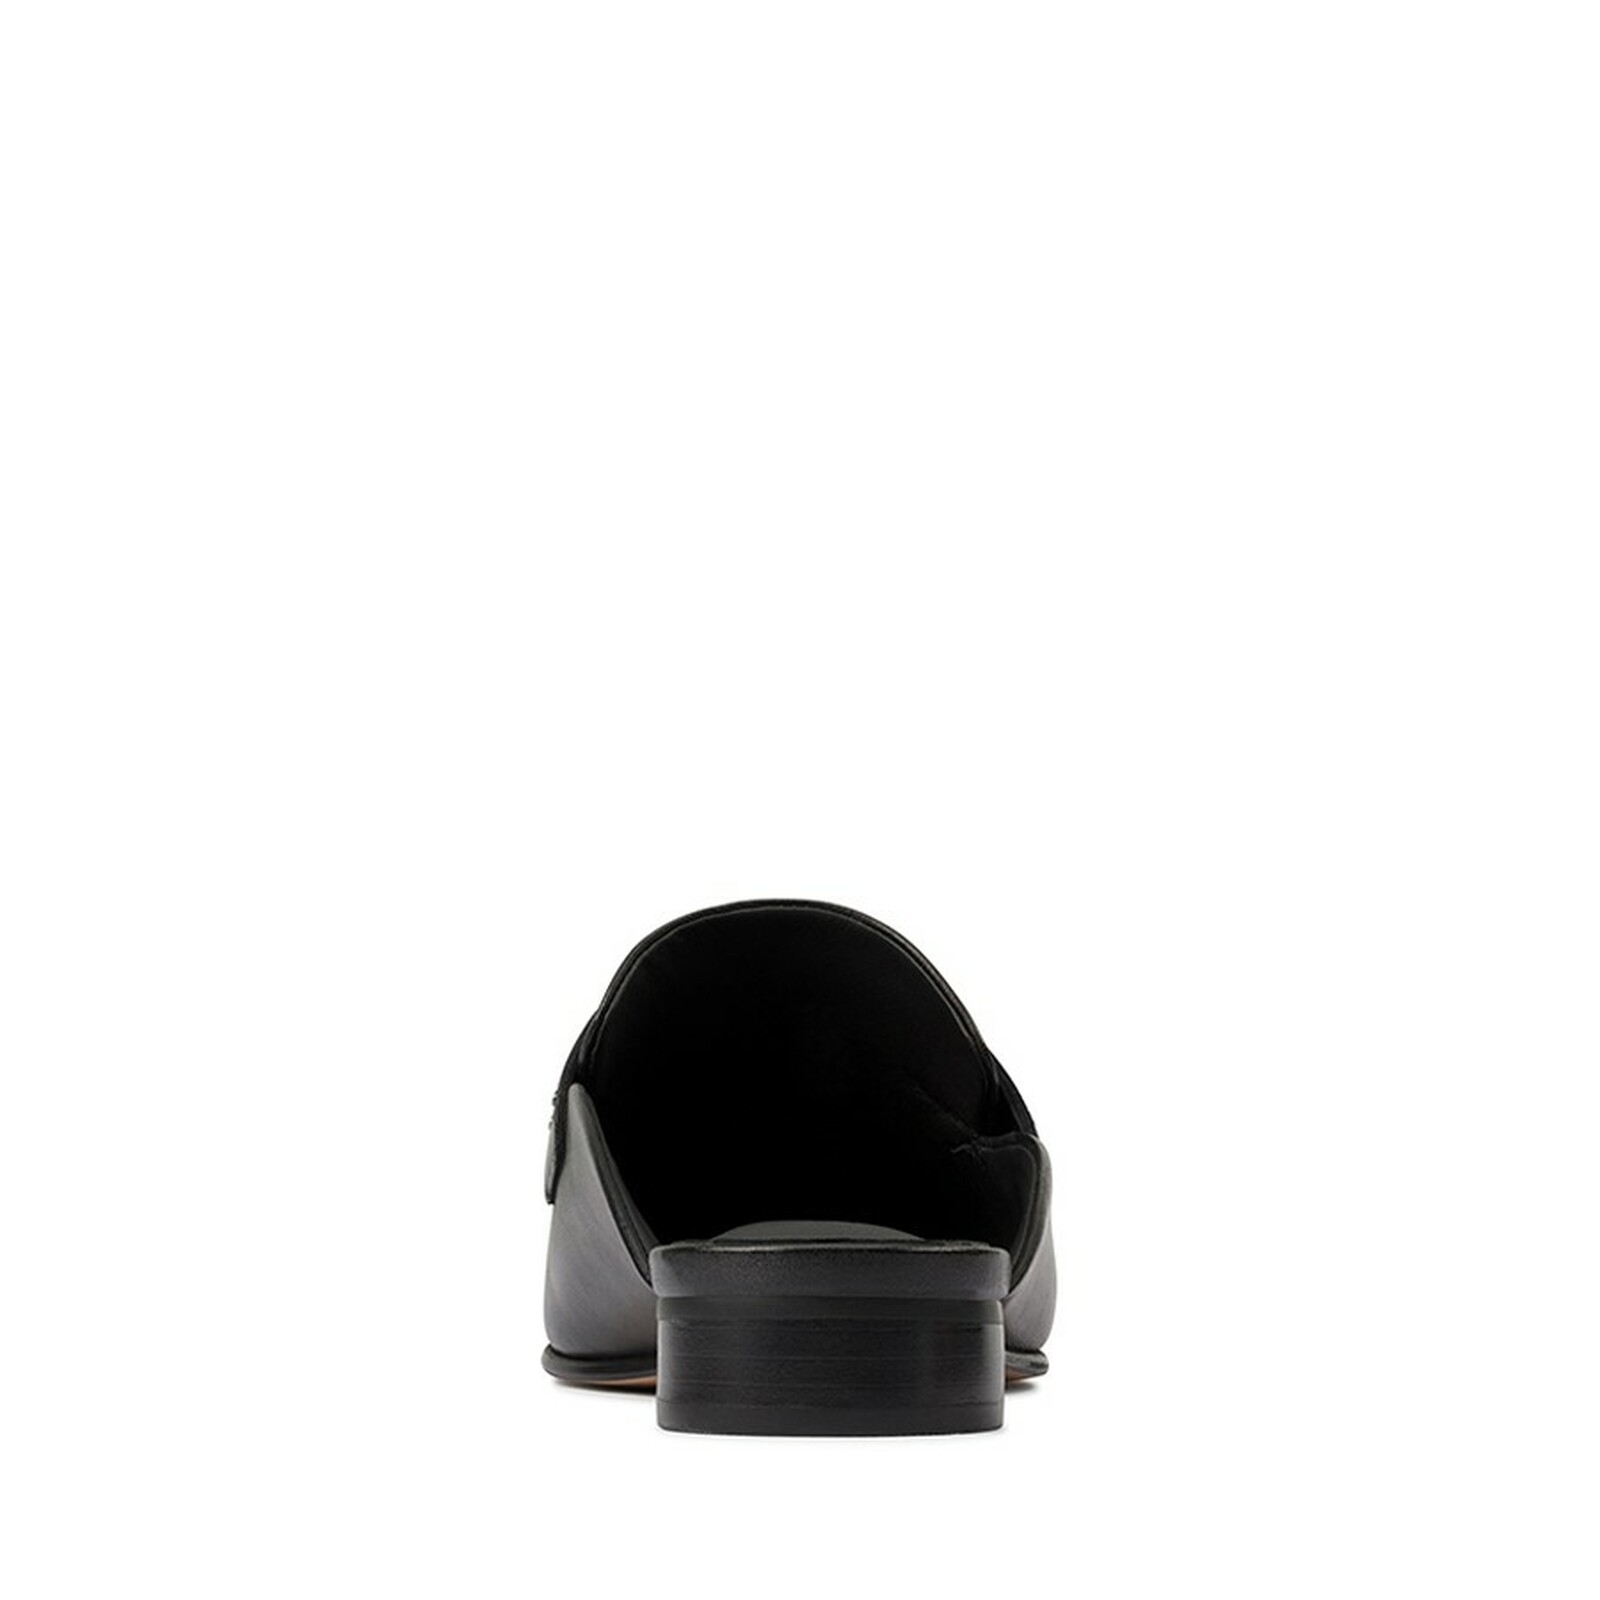 Clarks Womens PURE MULE Black Leather